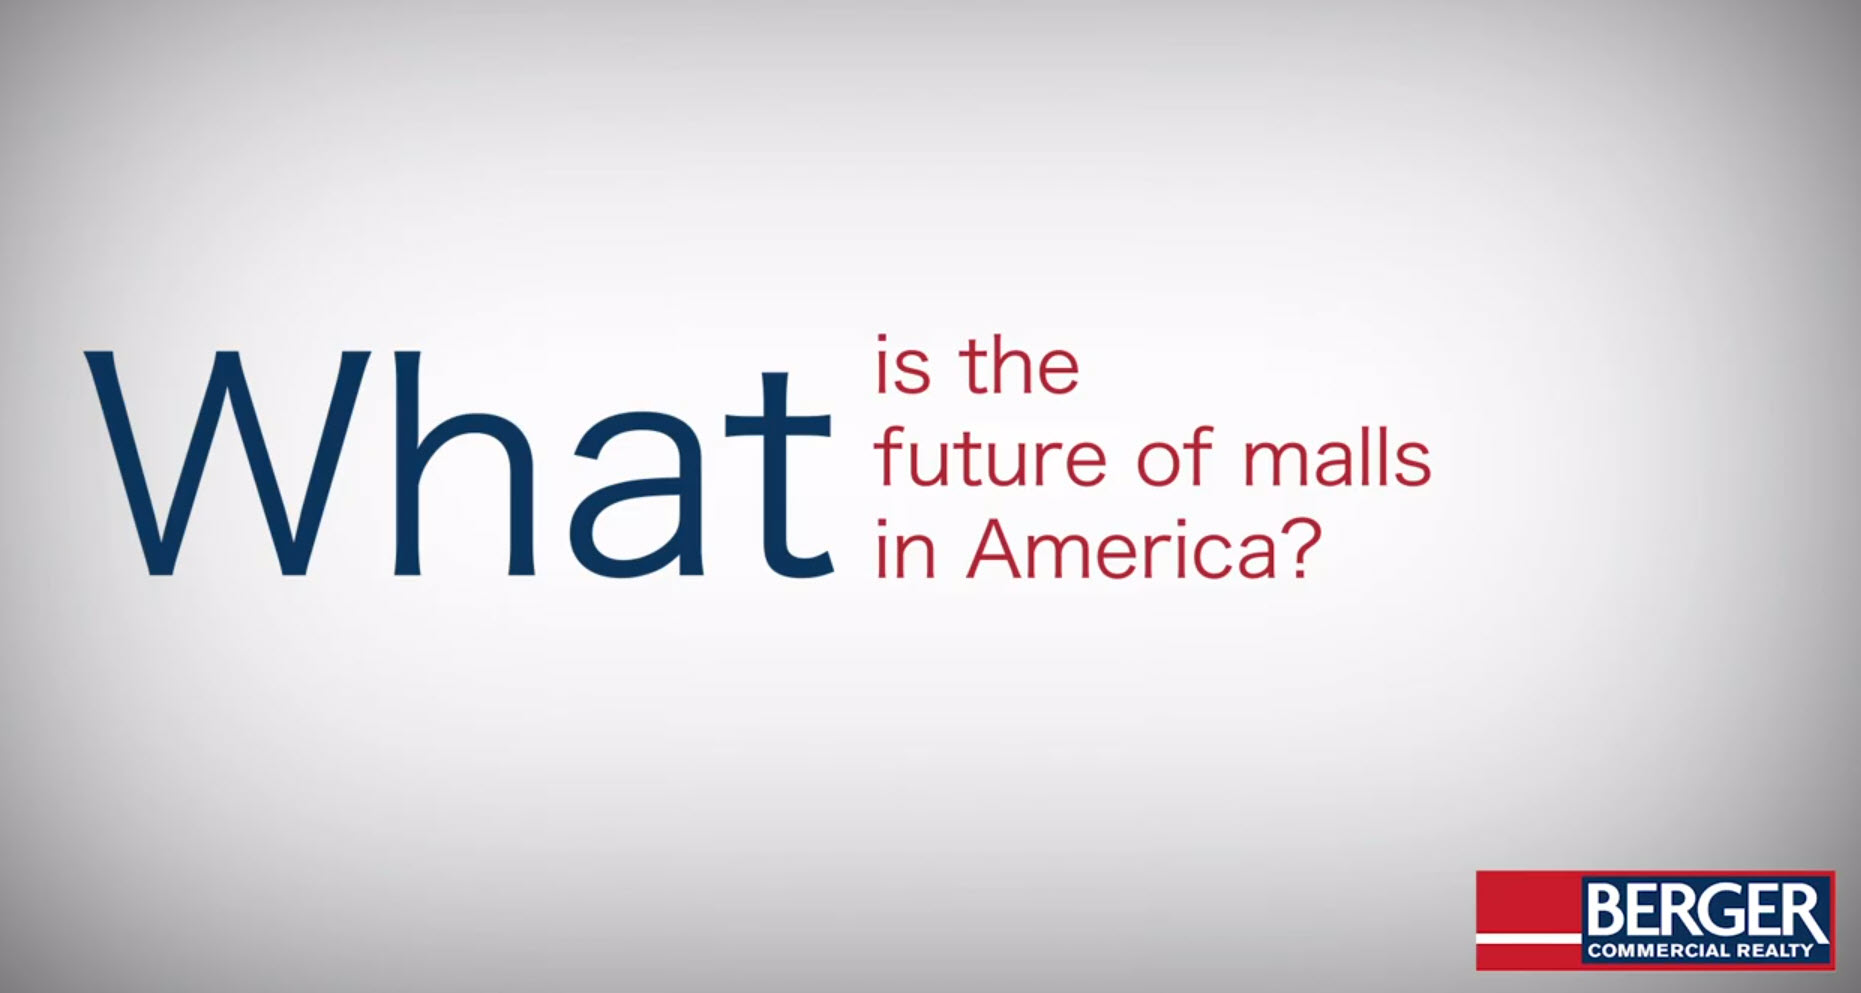 What is the Future of Malls in America?